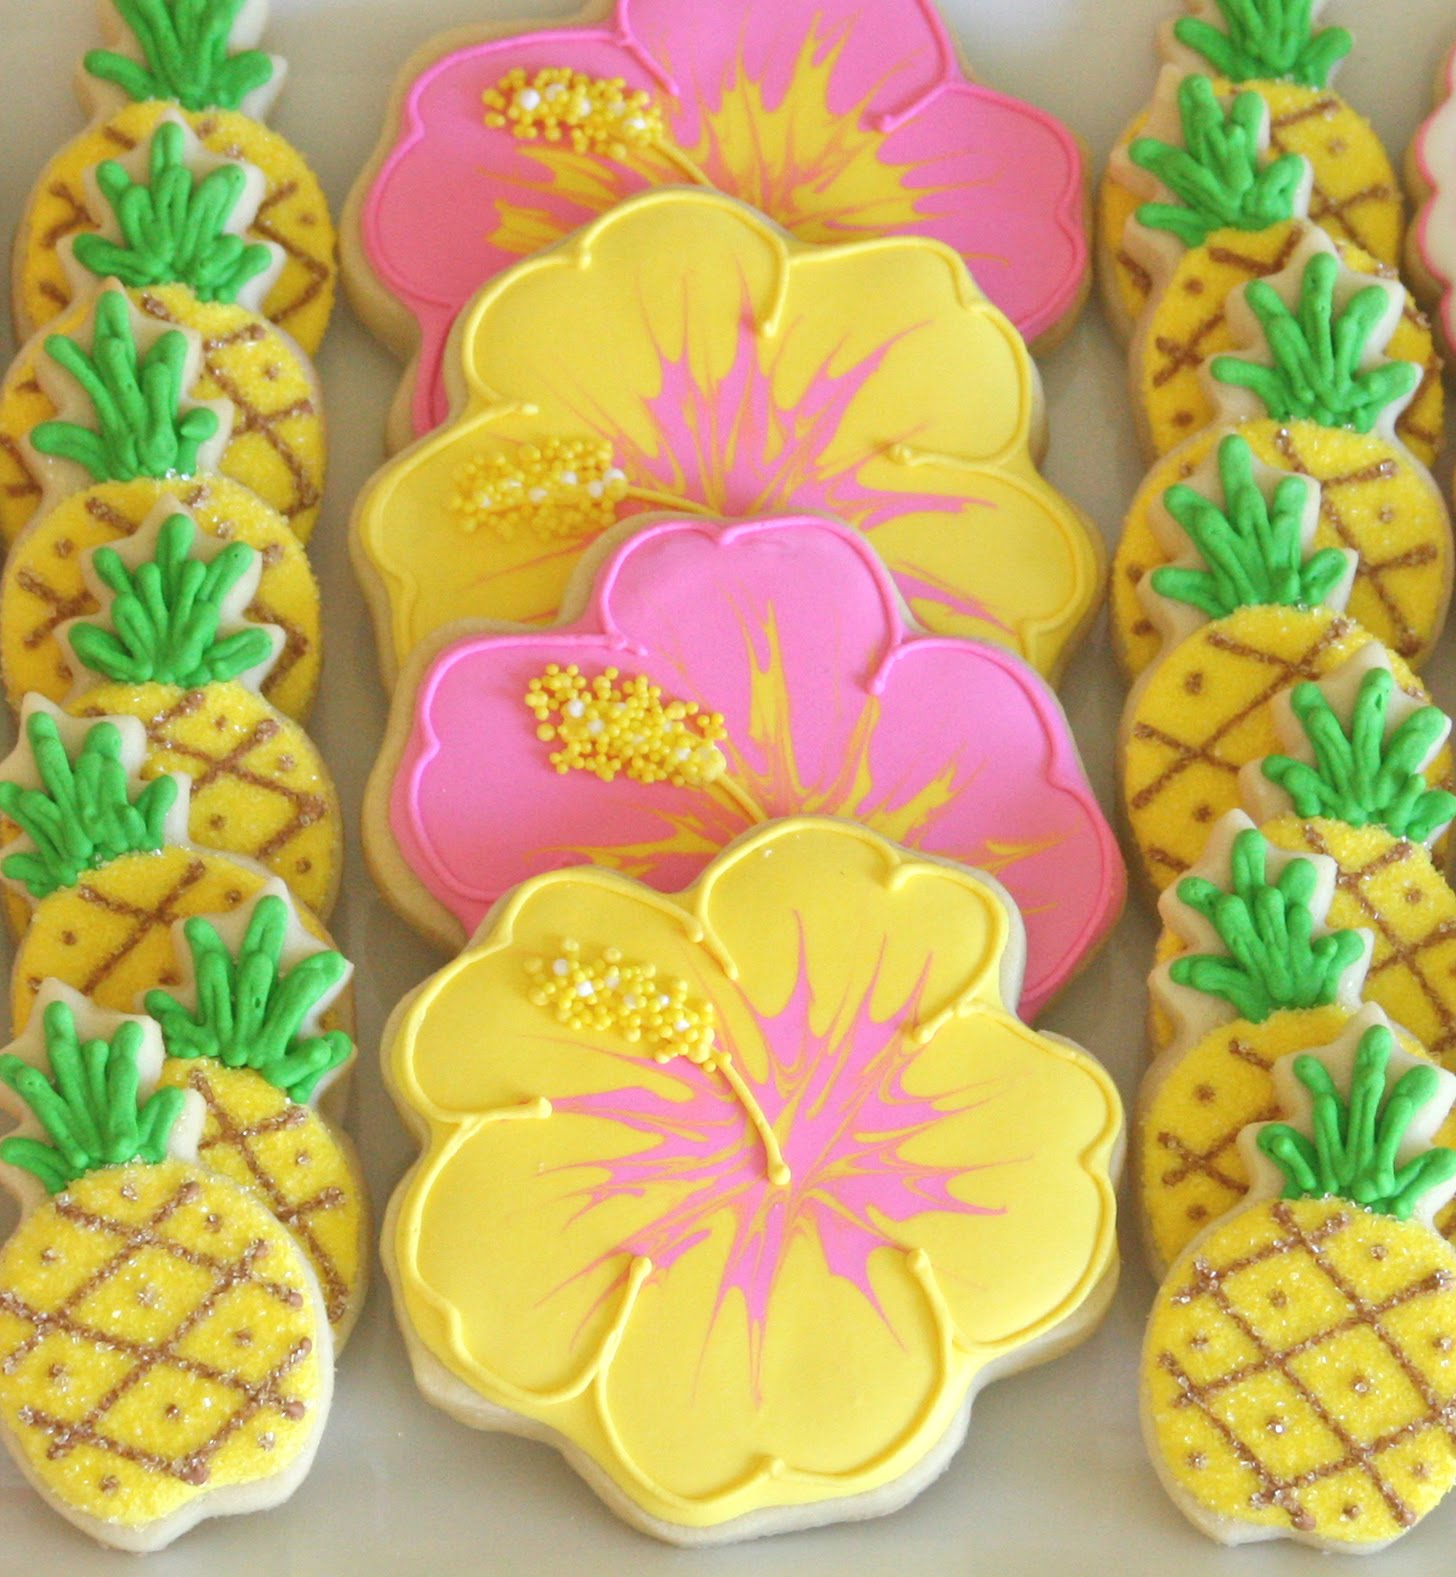 Cookie decorating how to make pretty hibiscus cookies glorious treats im here today to show you how to decorate hibiscus cookies like the ones i included in my luau dessert buffet last weekend izmirmasajfo